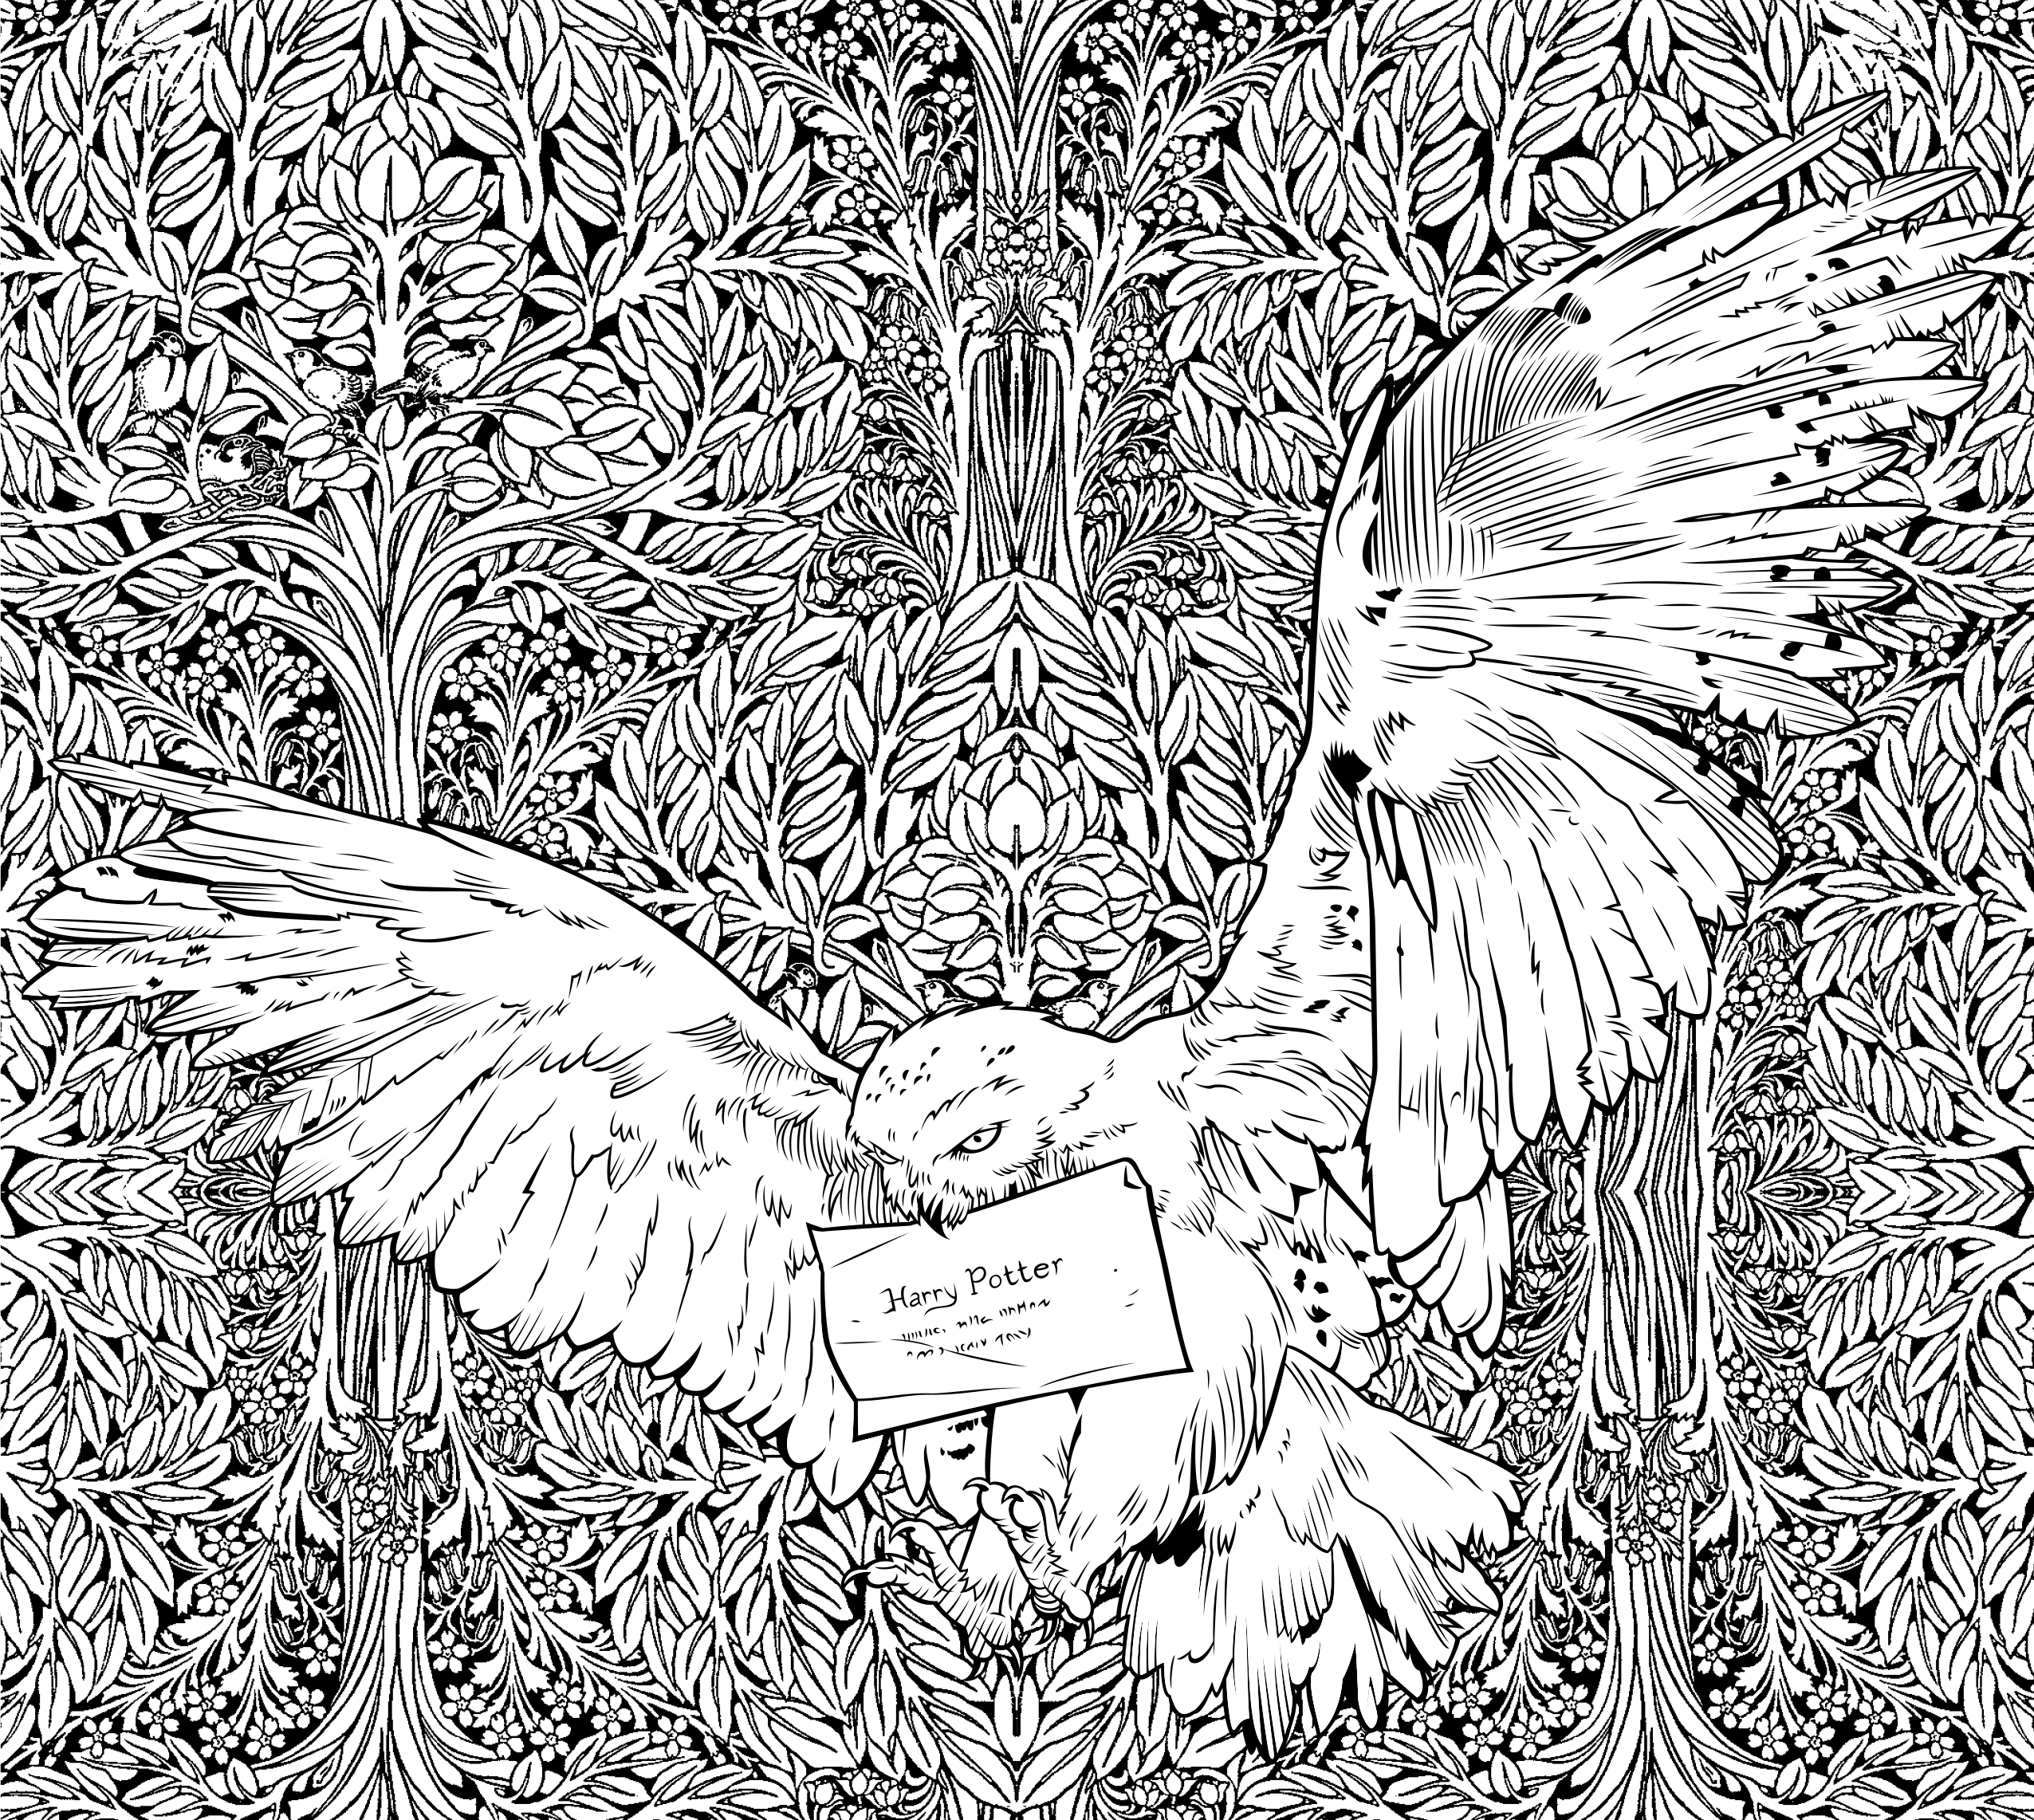 harry potter official coloring book